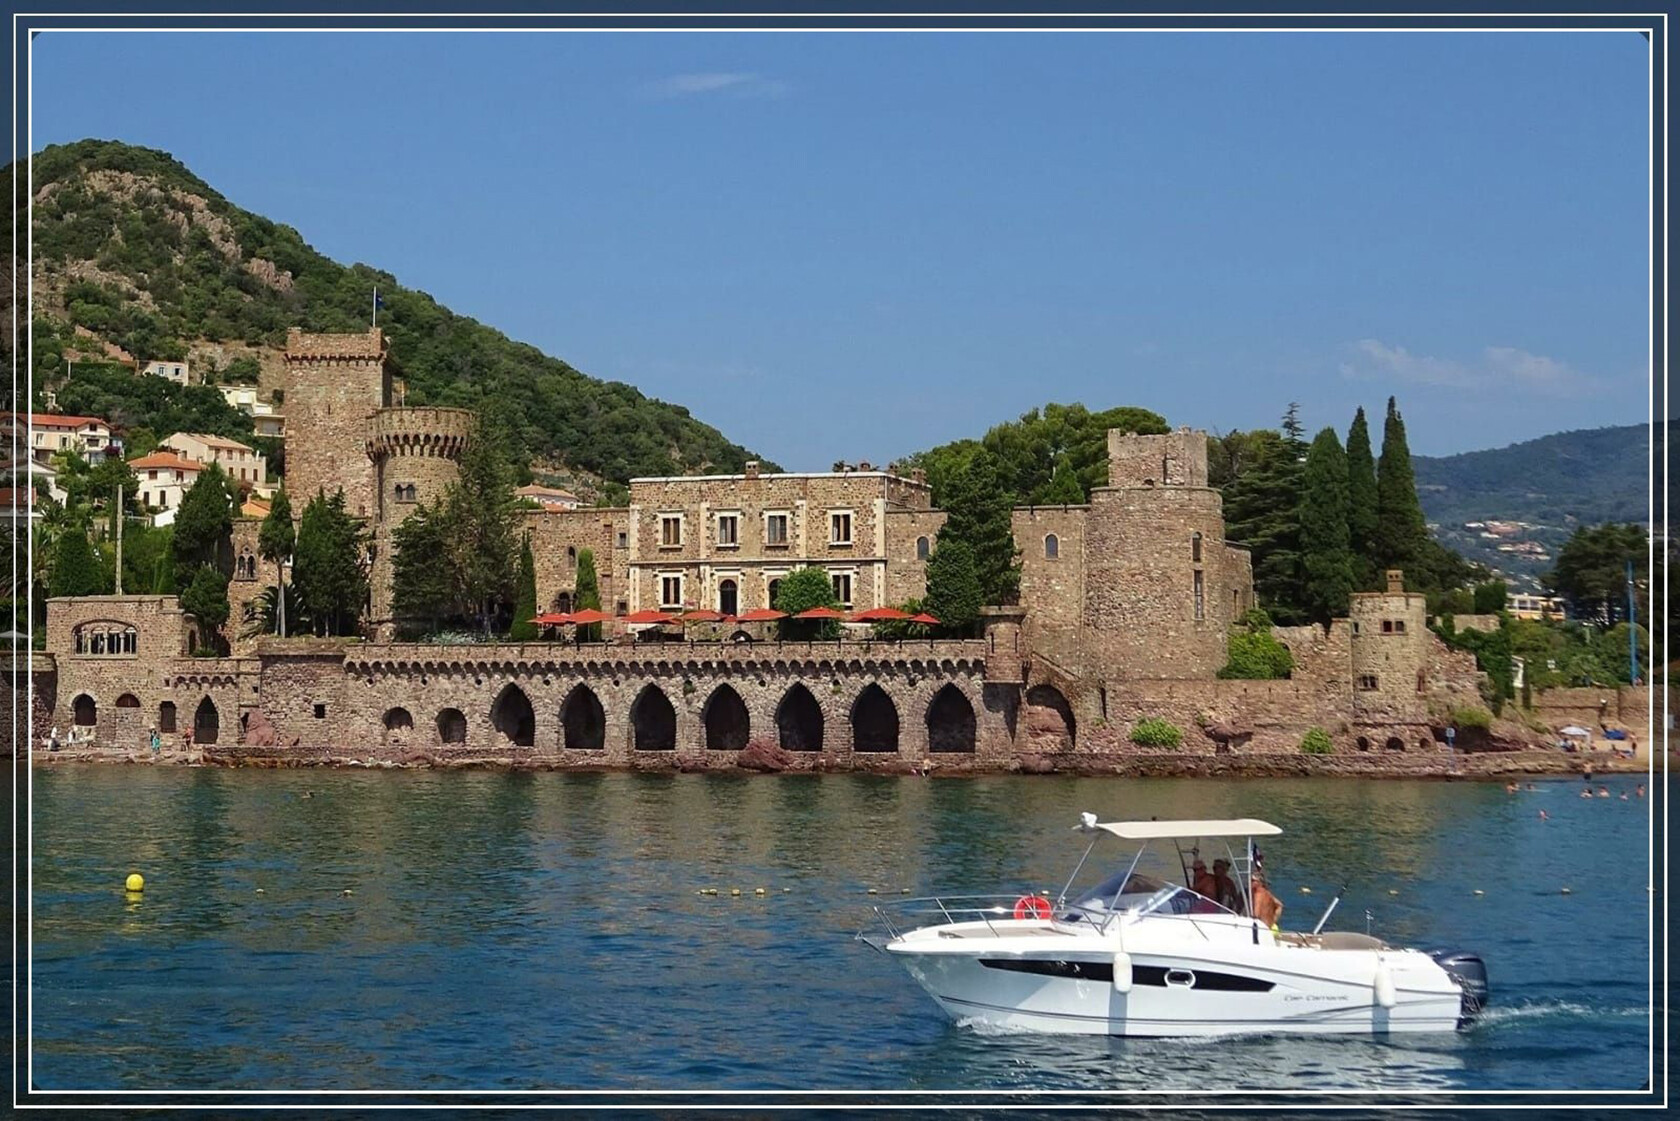 Affordable Family Holiday Riviera Boating Chic Gites